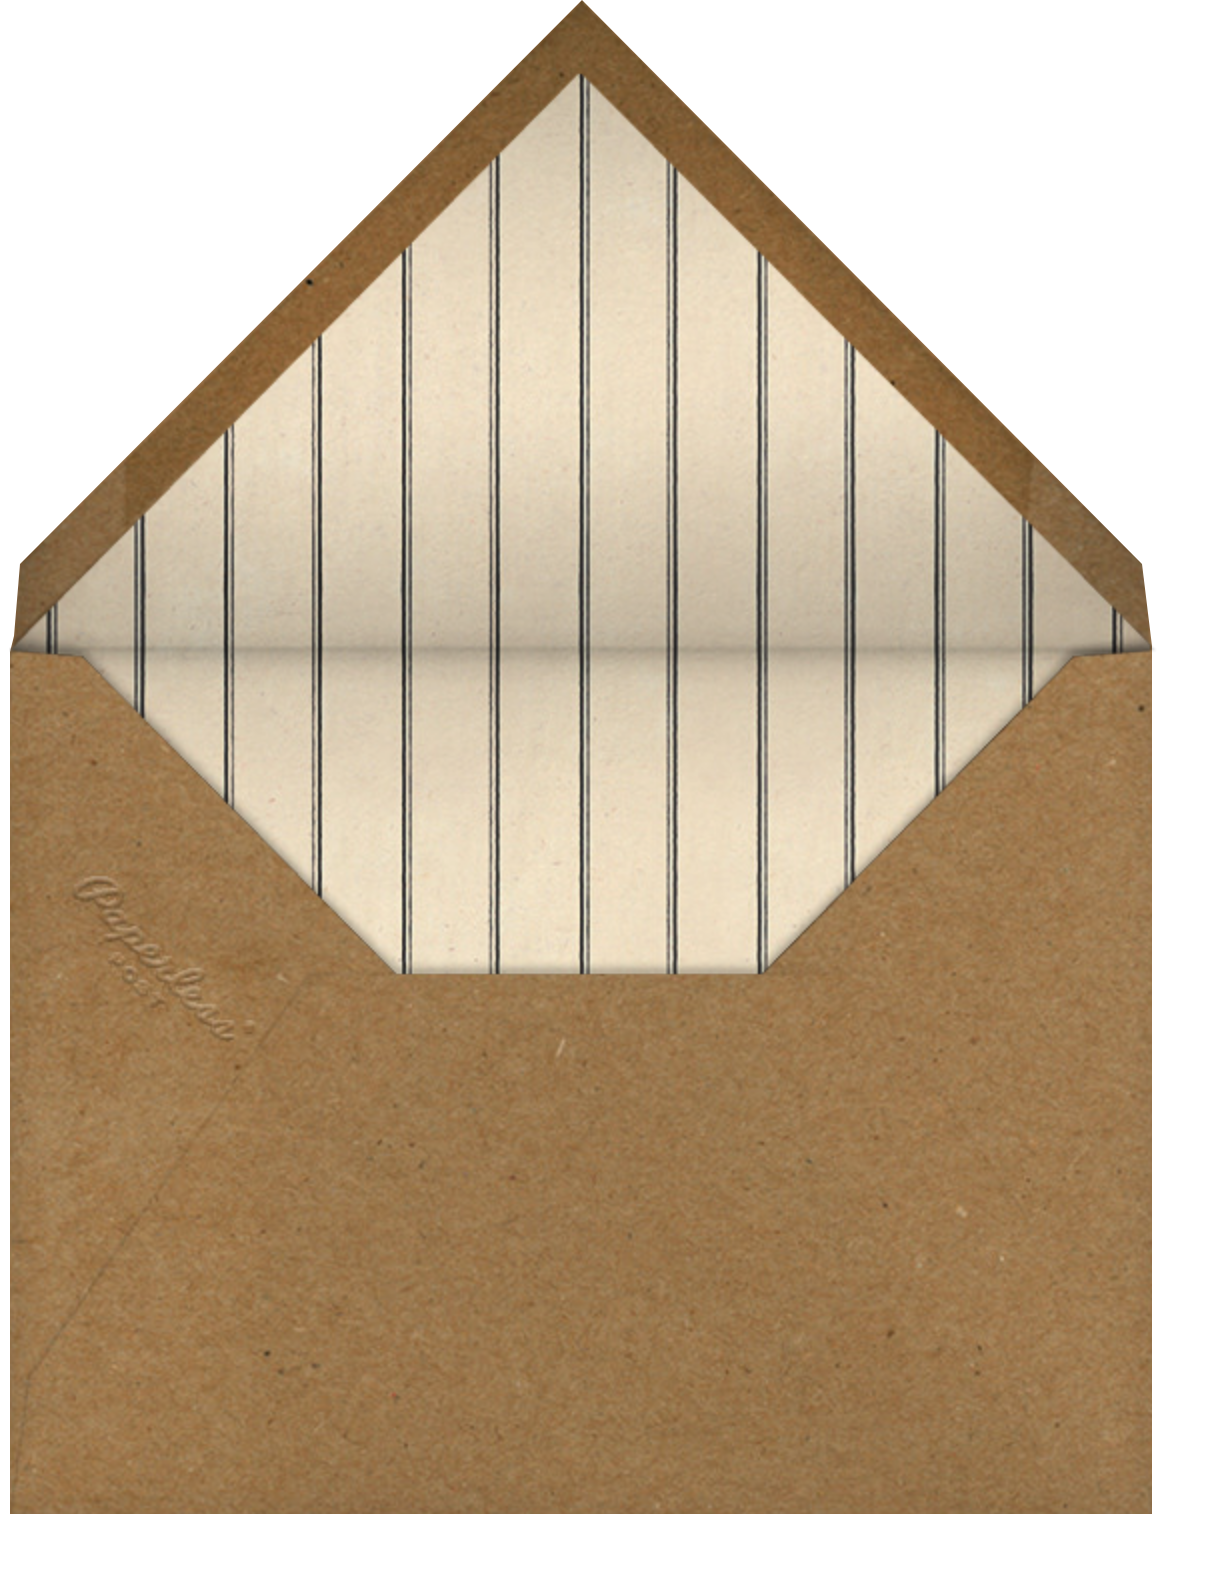 Woodframe - John Derian - Barbecue - envelope back